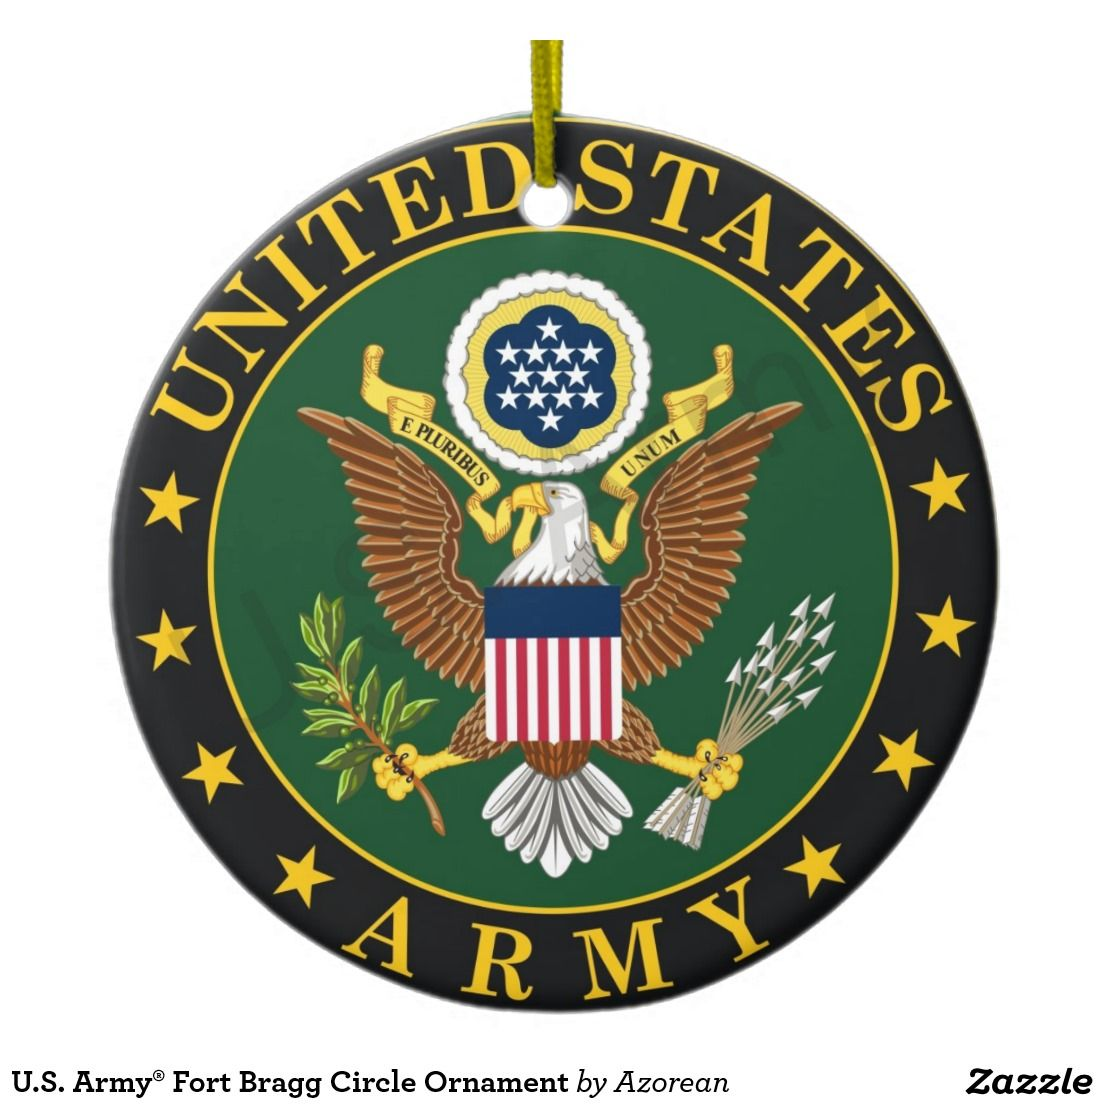 U.S. Army® Fort Bragg Circle Ornament Army symbol, Army